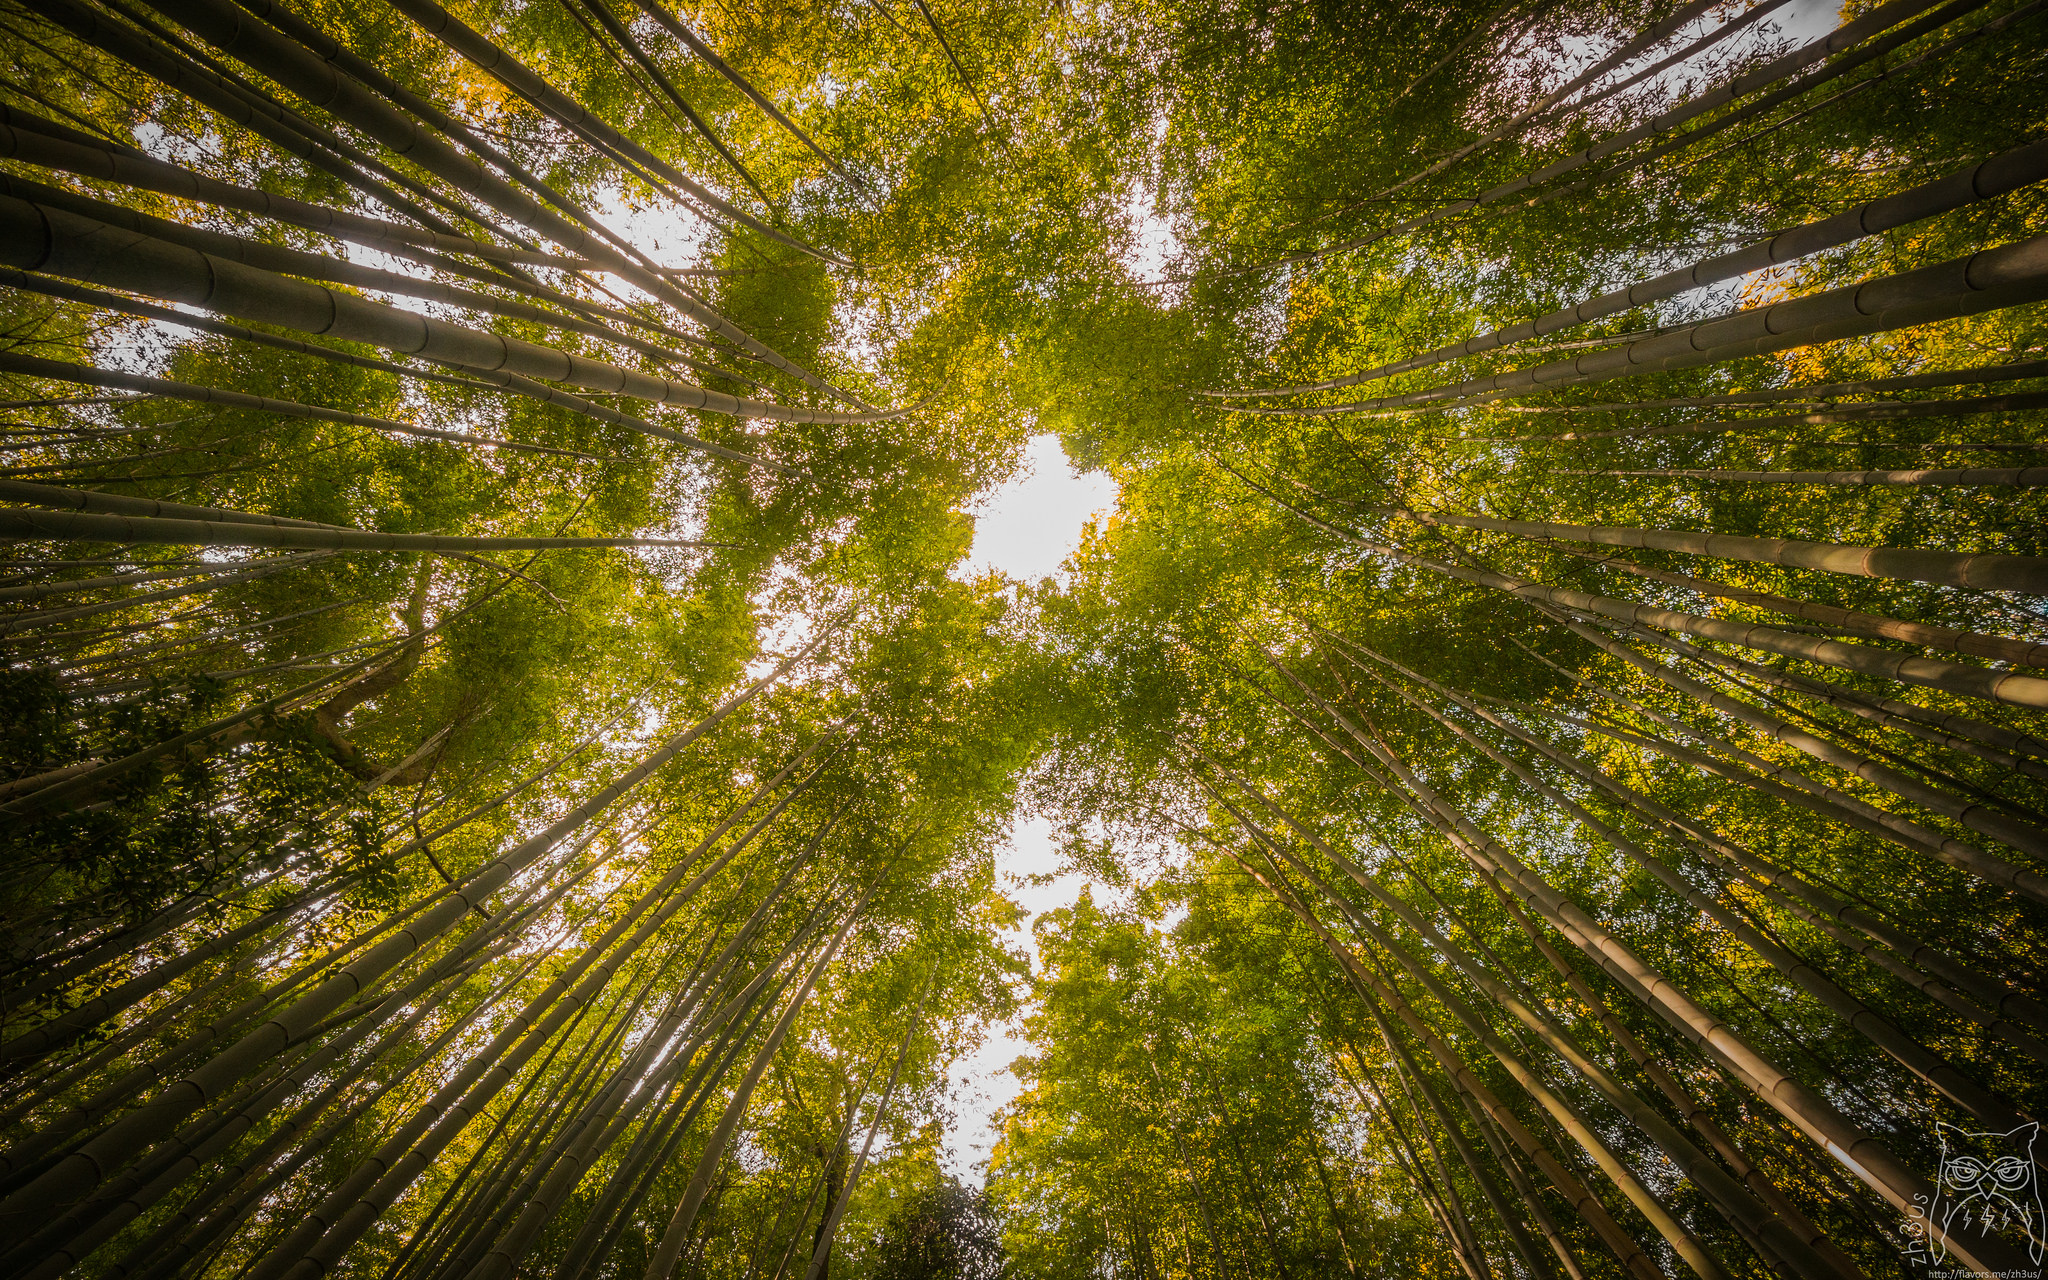 Sagano Bamboo Forest Forest In Kyoto Thousand Wonders